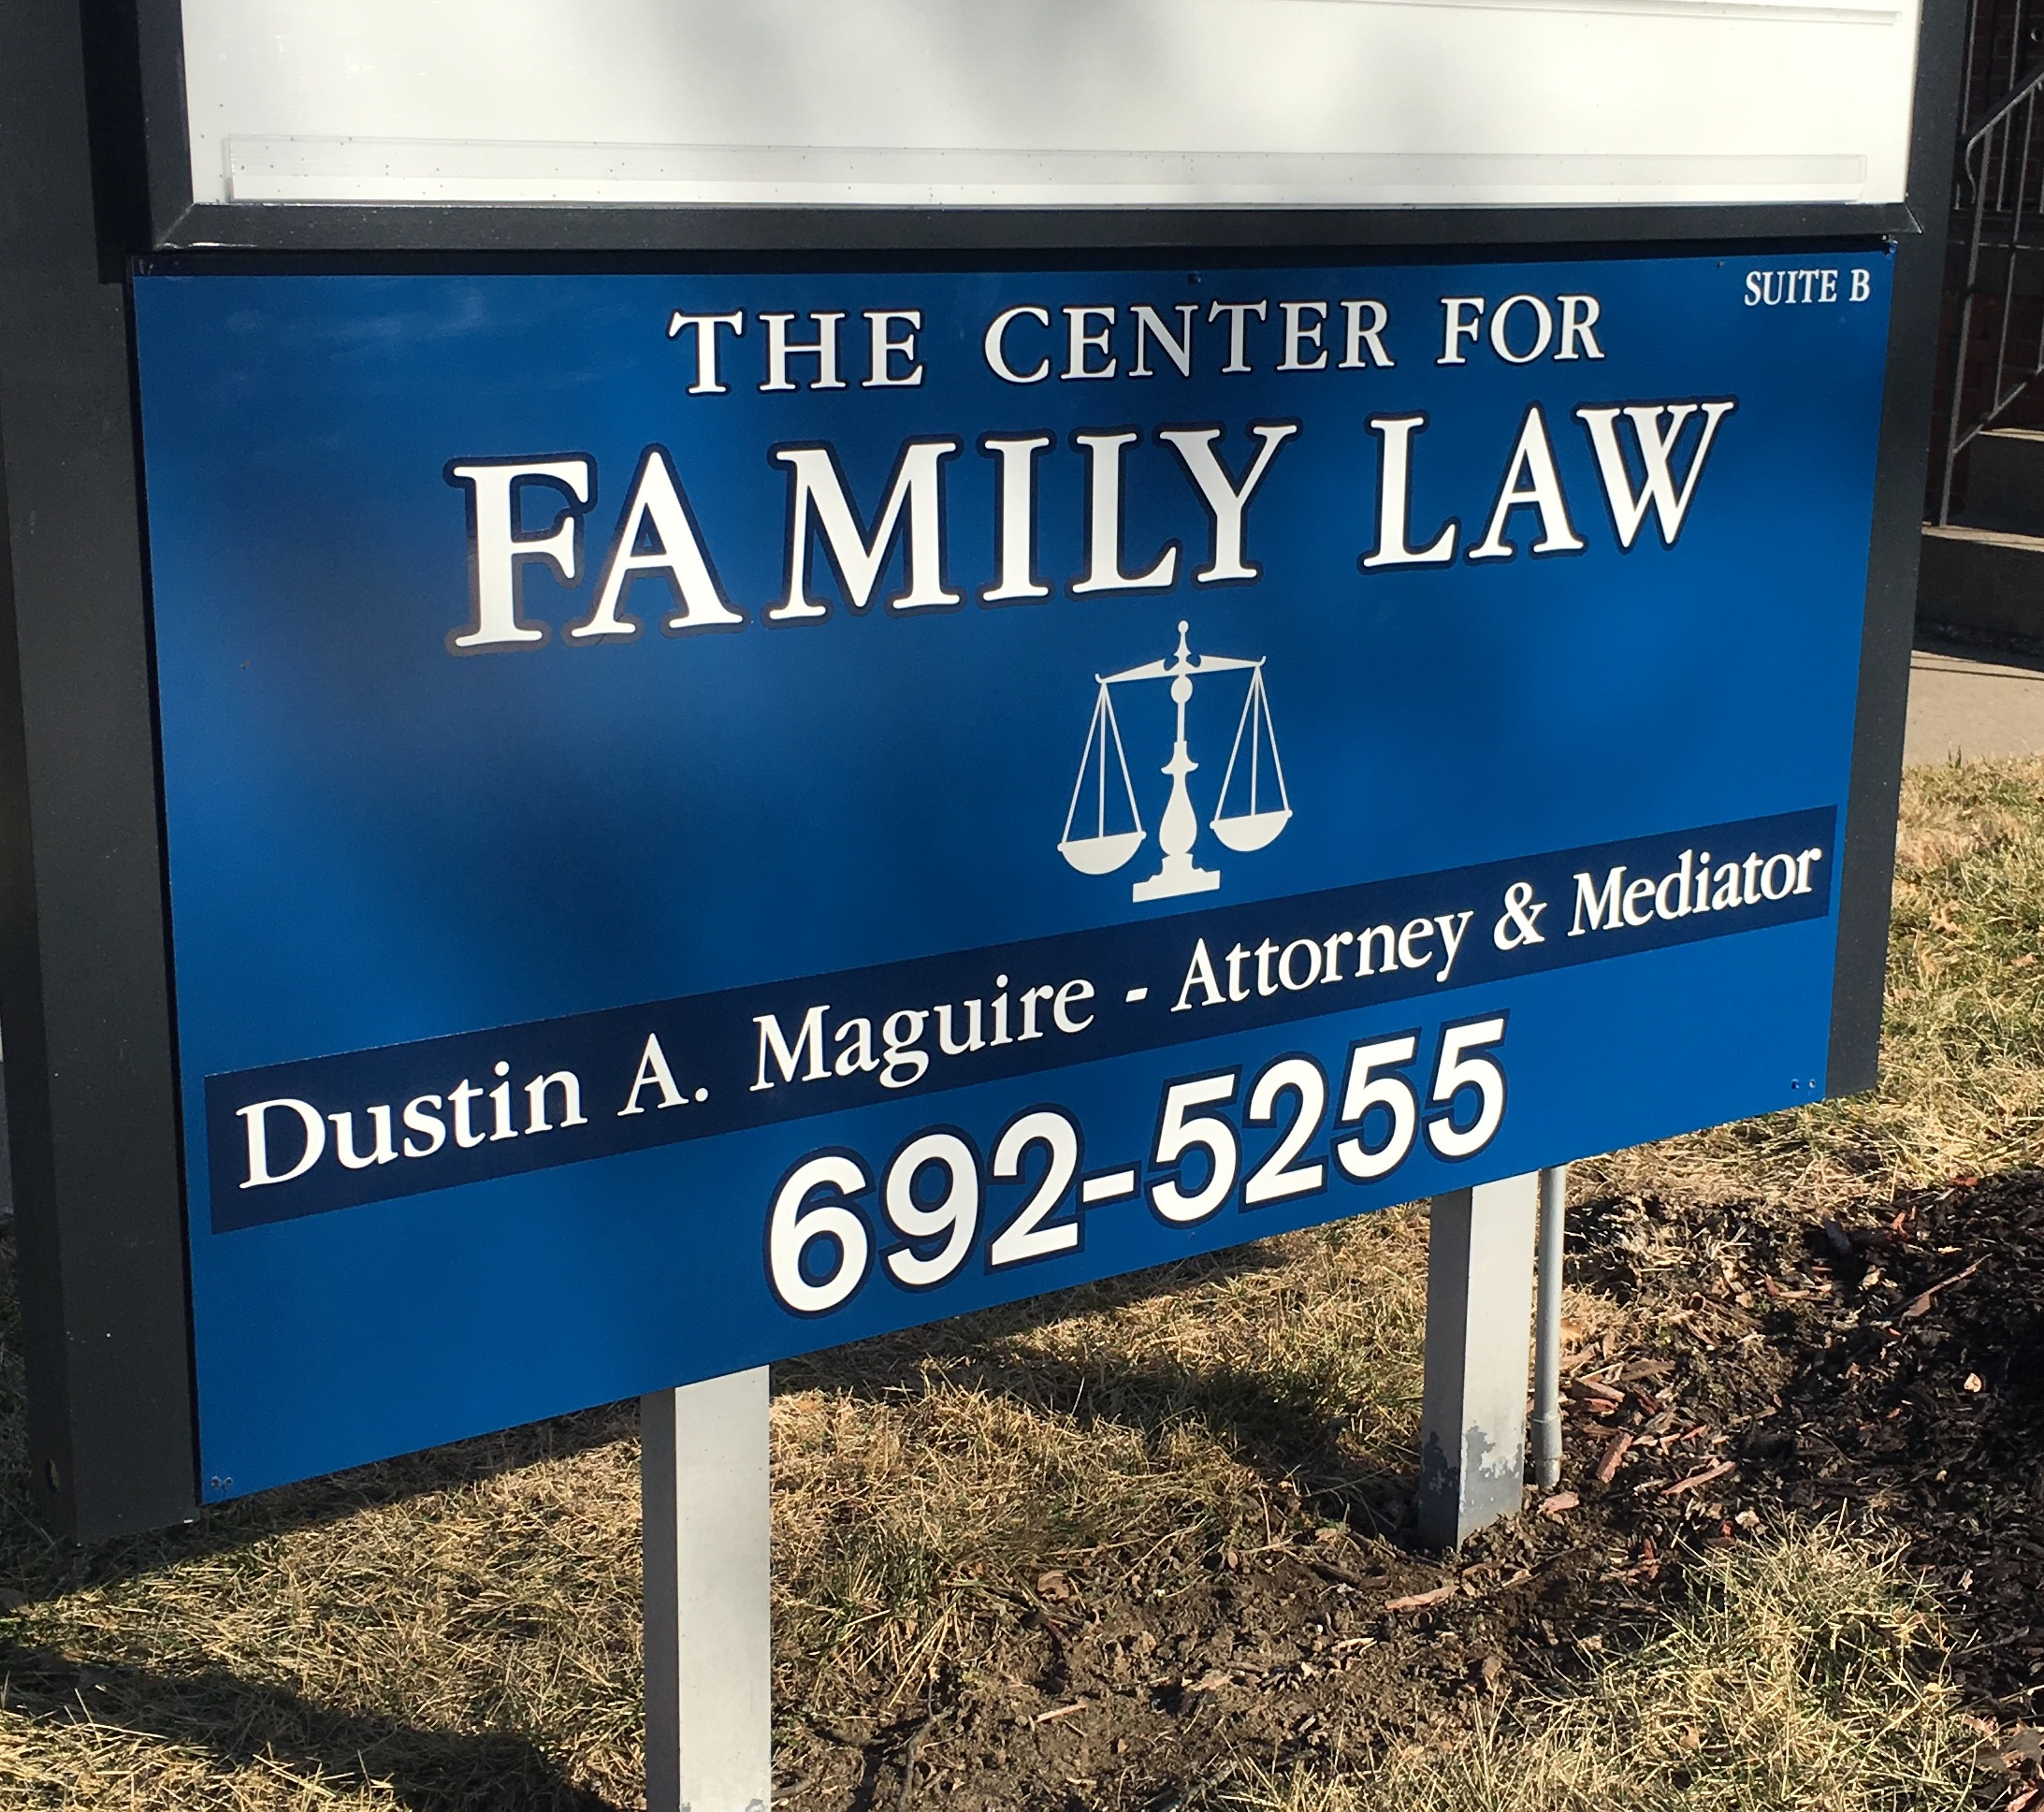 About The Center for Family Law